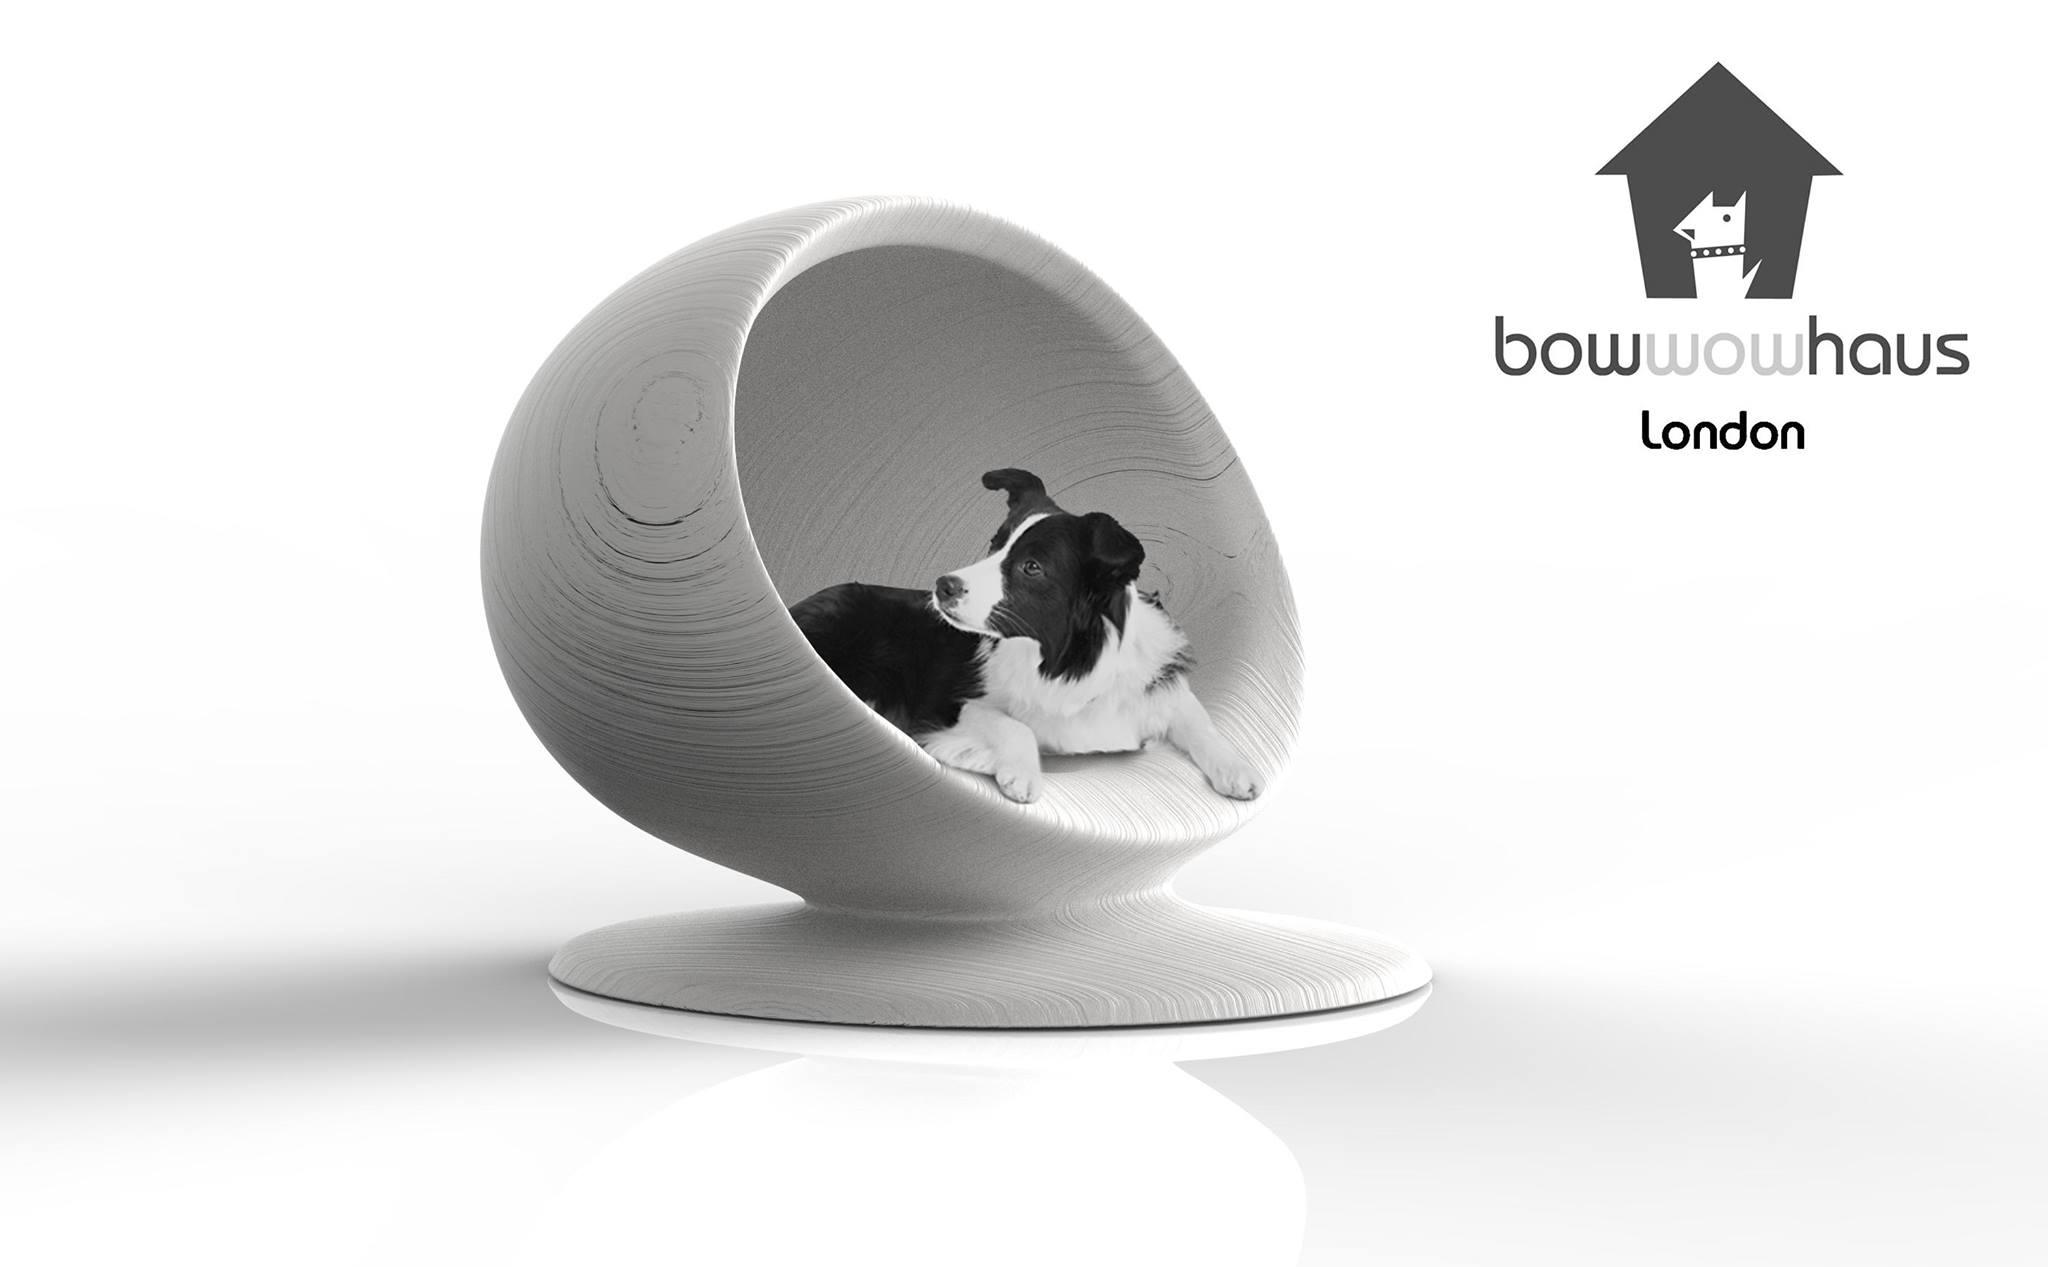 Bow Wow Haus London Auction